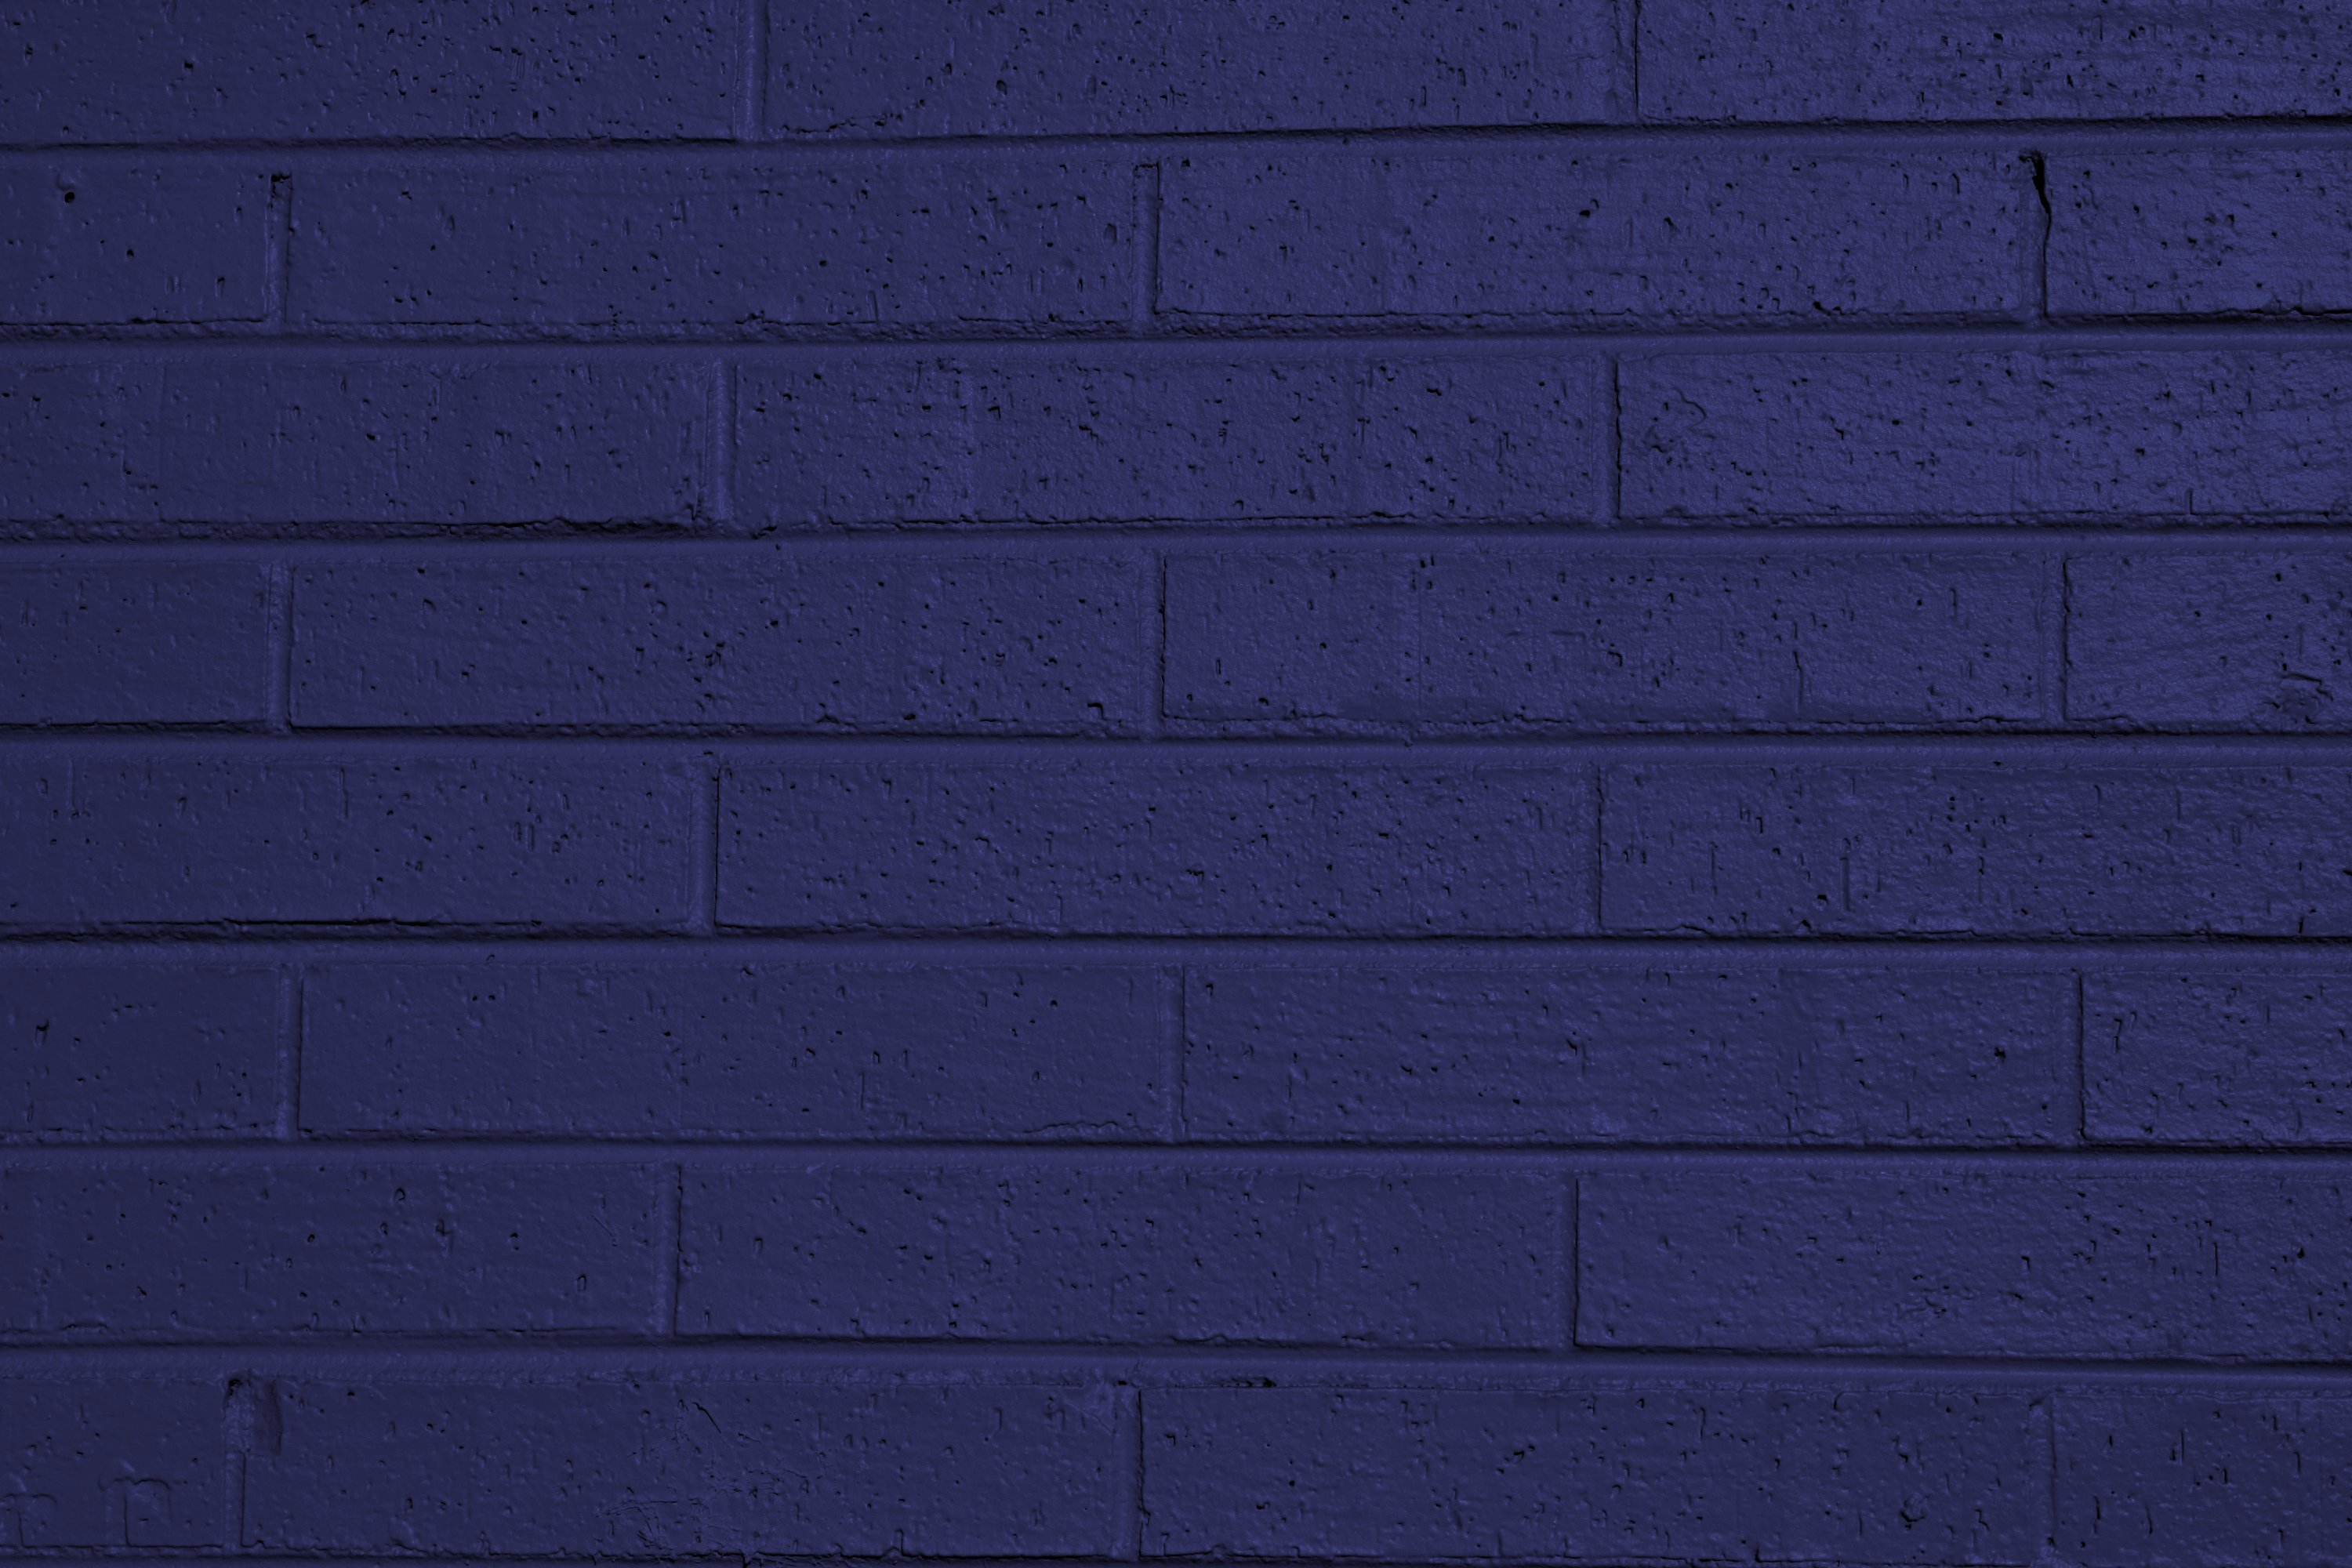 Blue Painted Brick Wall Texture Picture Free Photograph